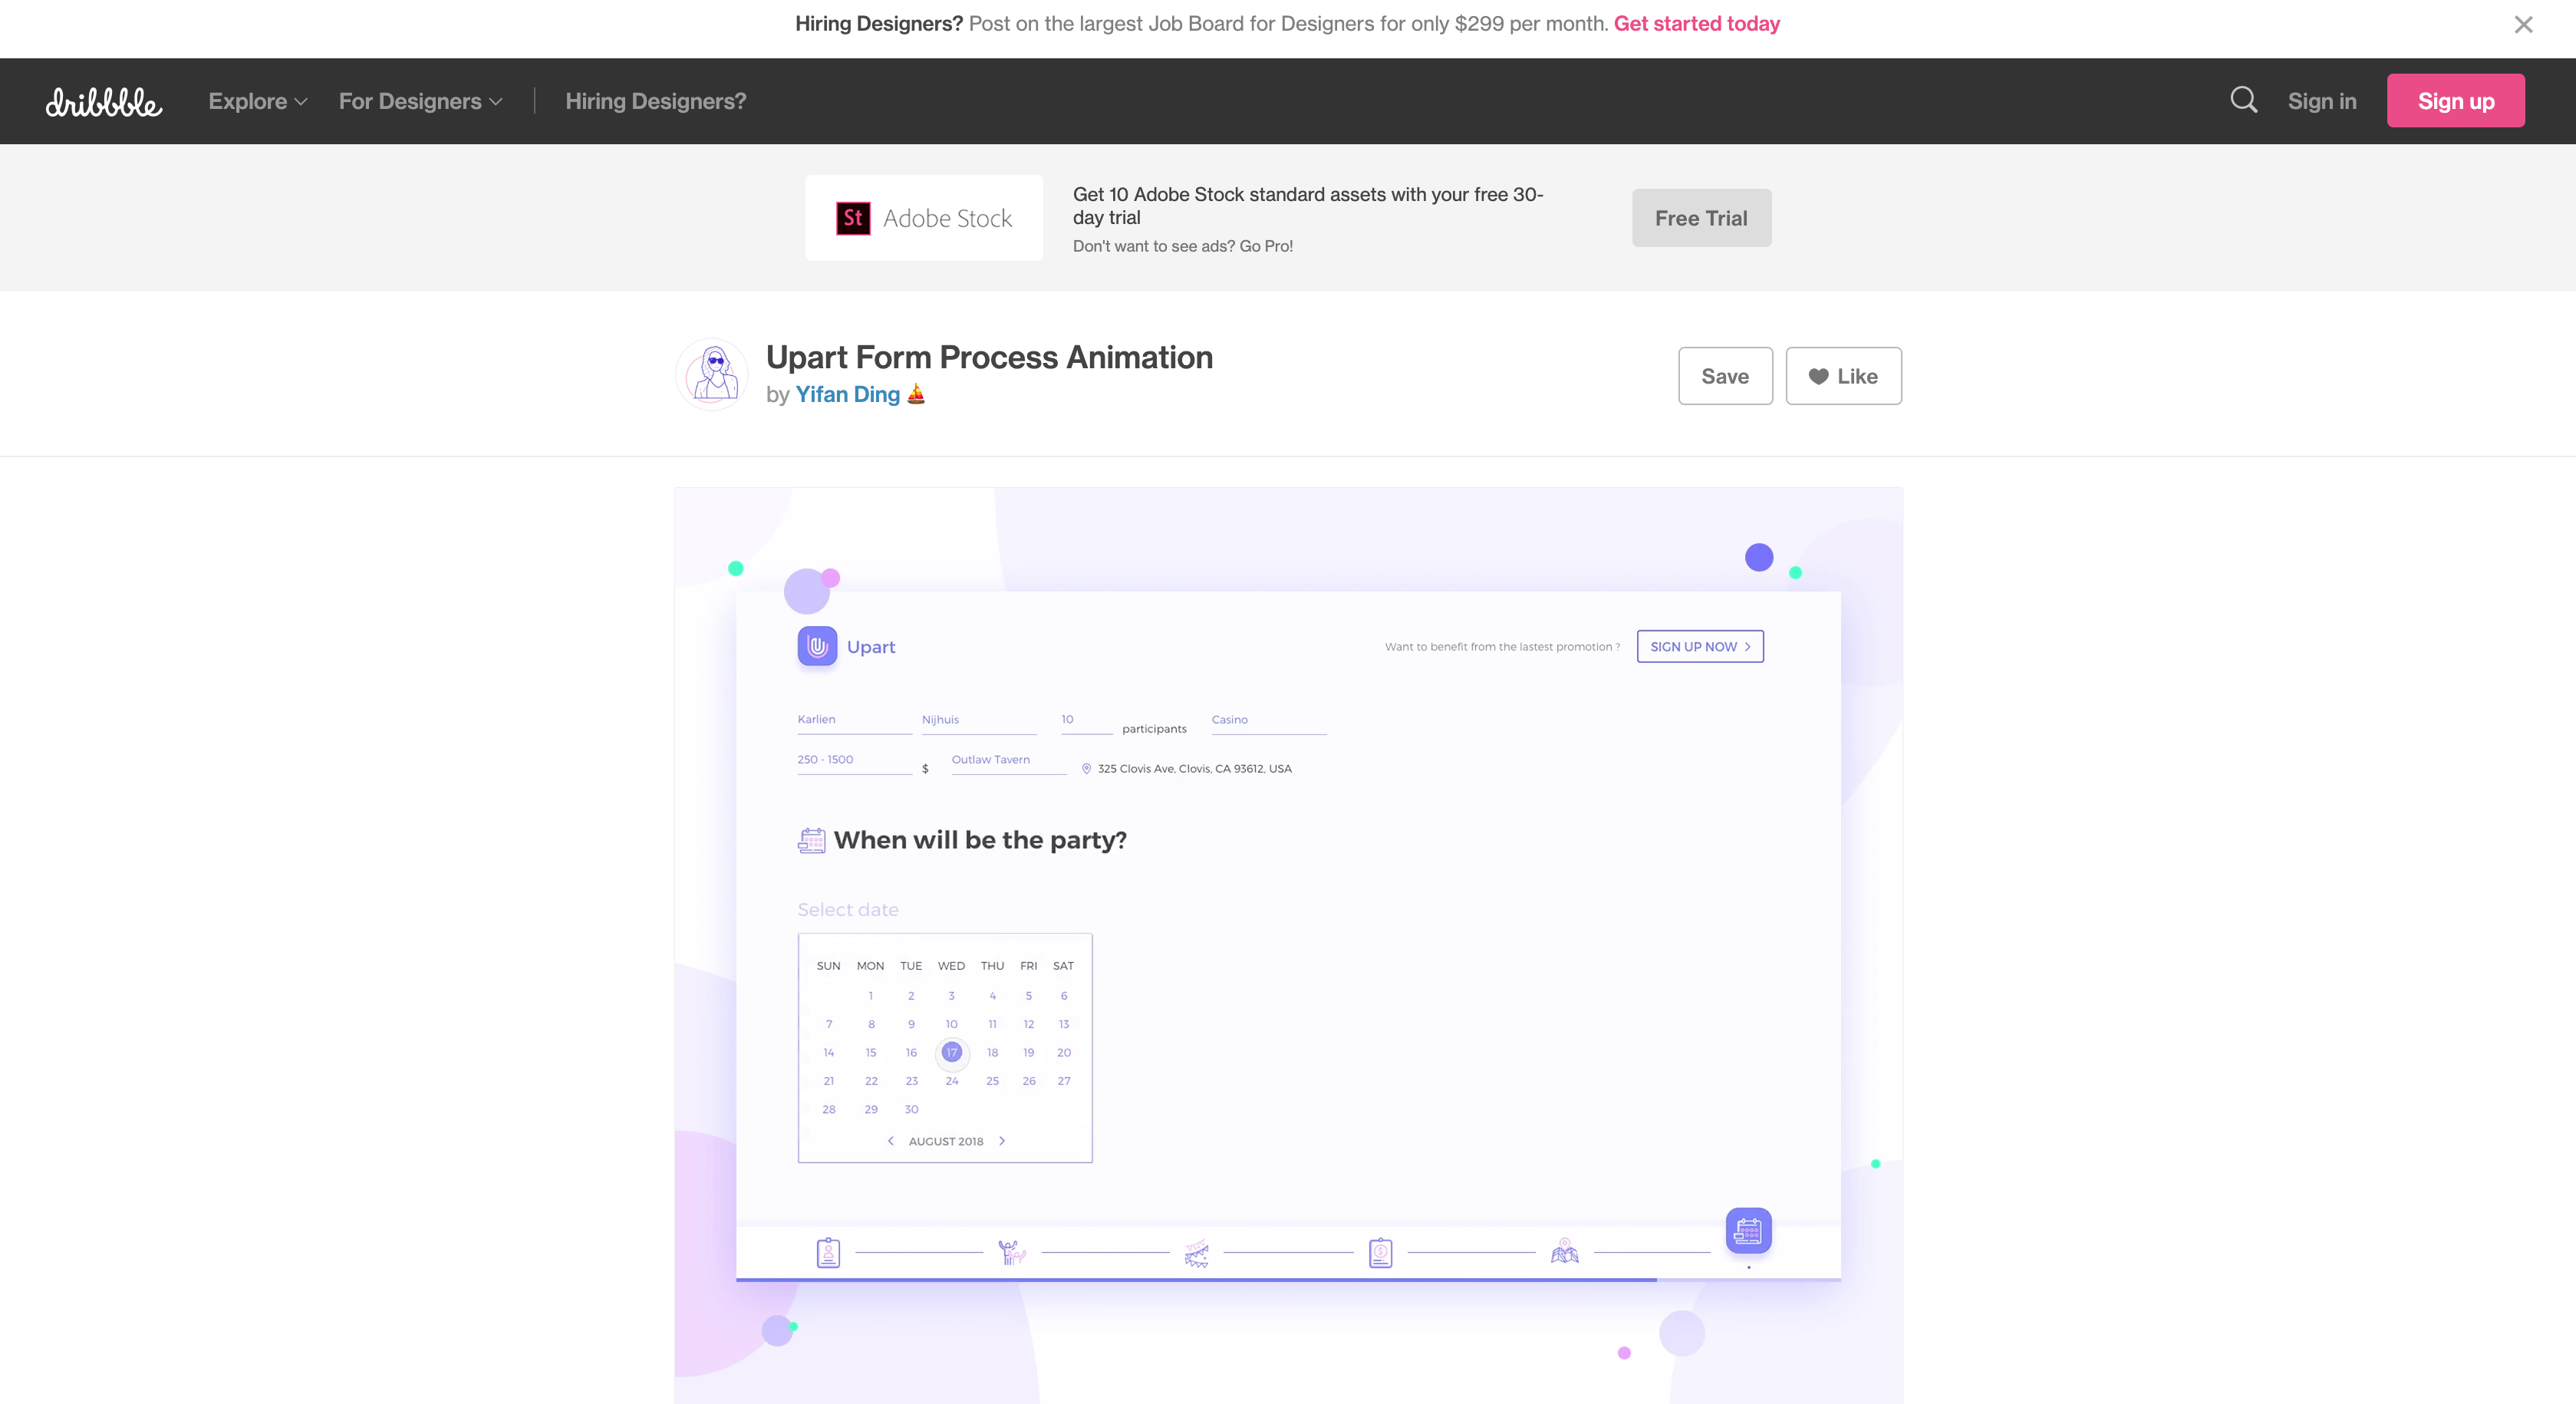 Upart Form Process Animation By Yifan Ding On Dribbble In 2020 Web Design Animation Animation Design